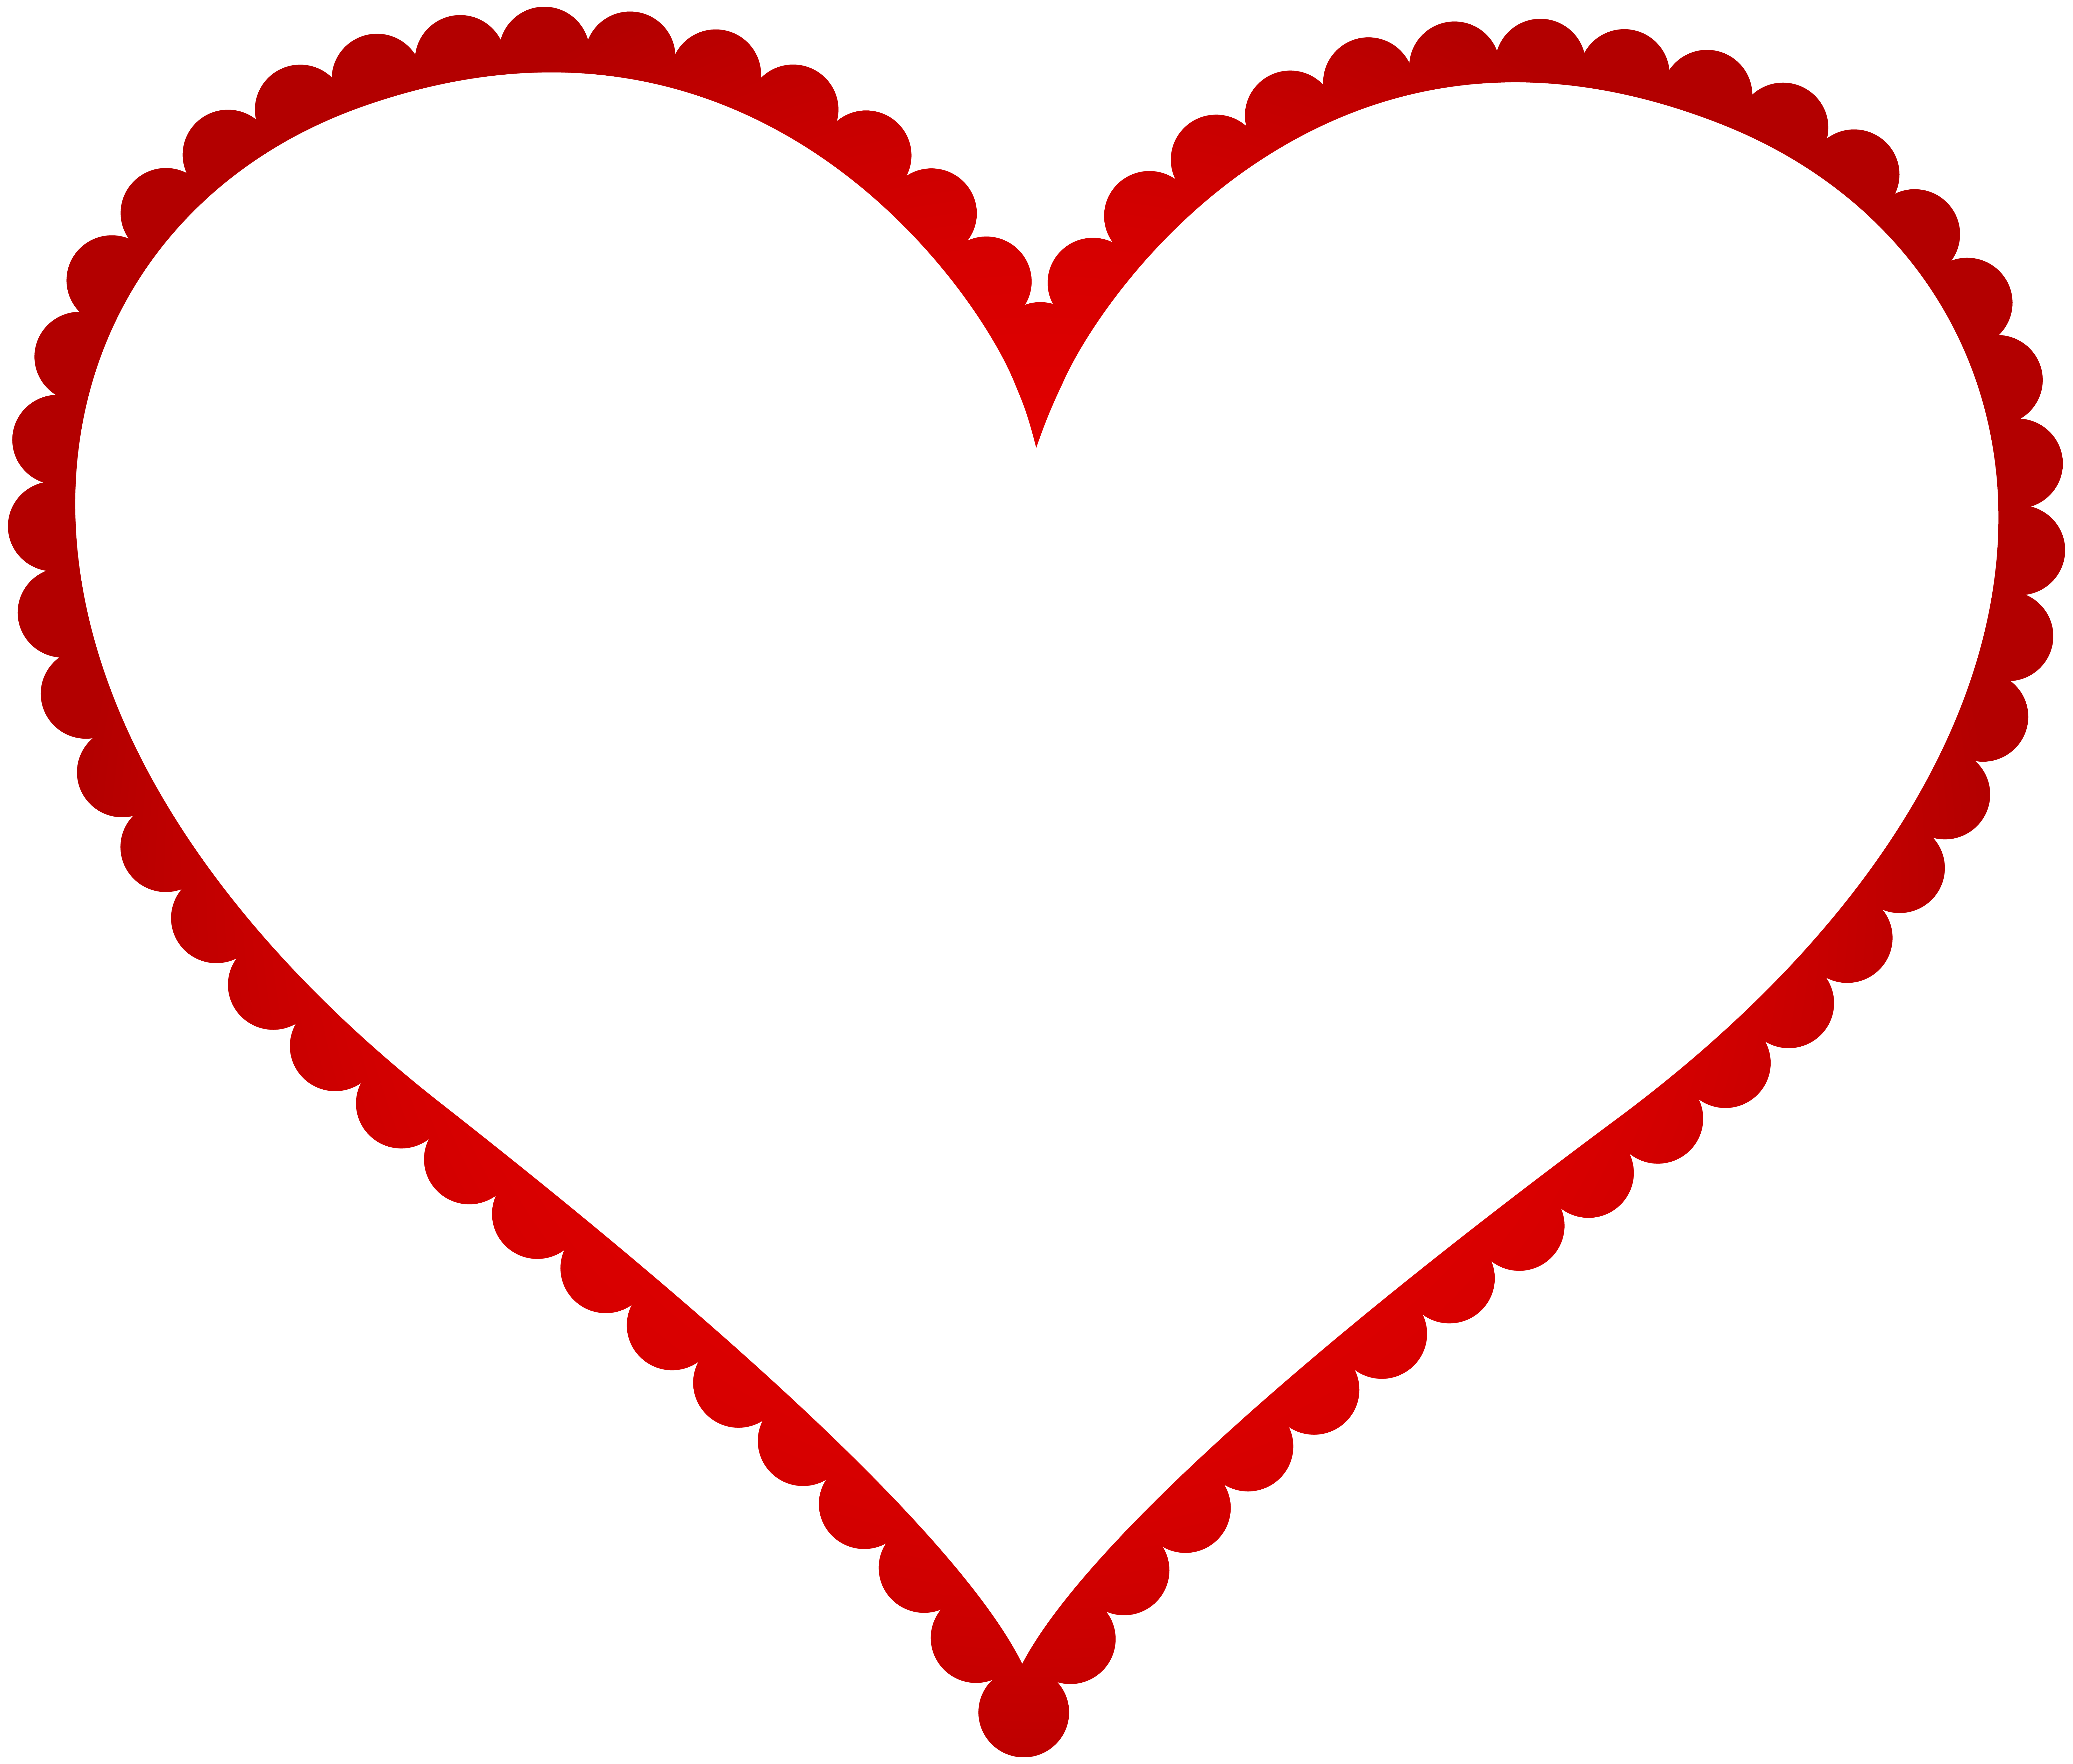 Red Heart Border Frame Transparent Png Clip Art Gallery Yopriceville High Quality Images And Transparent Png Free Clip Heart Border Free Clip Art Clip Art